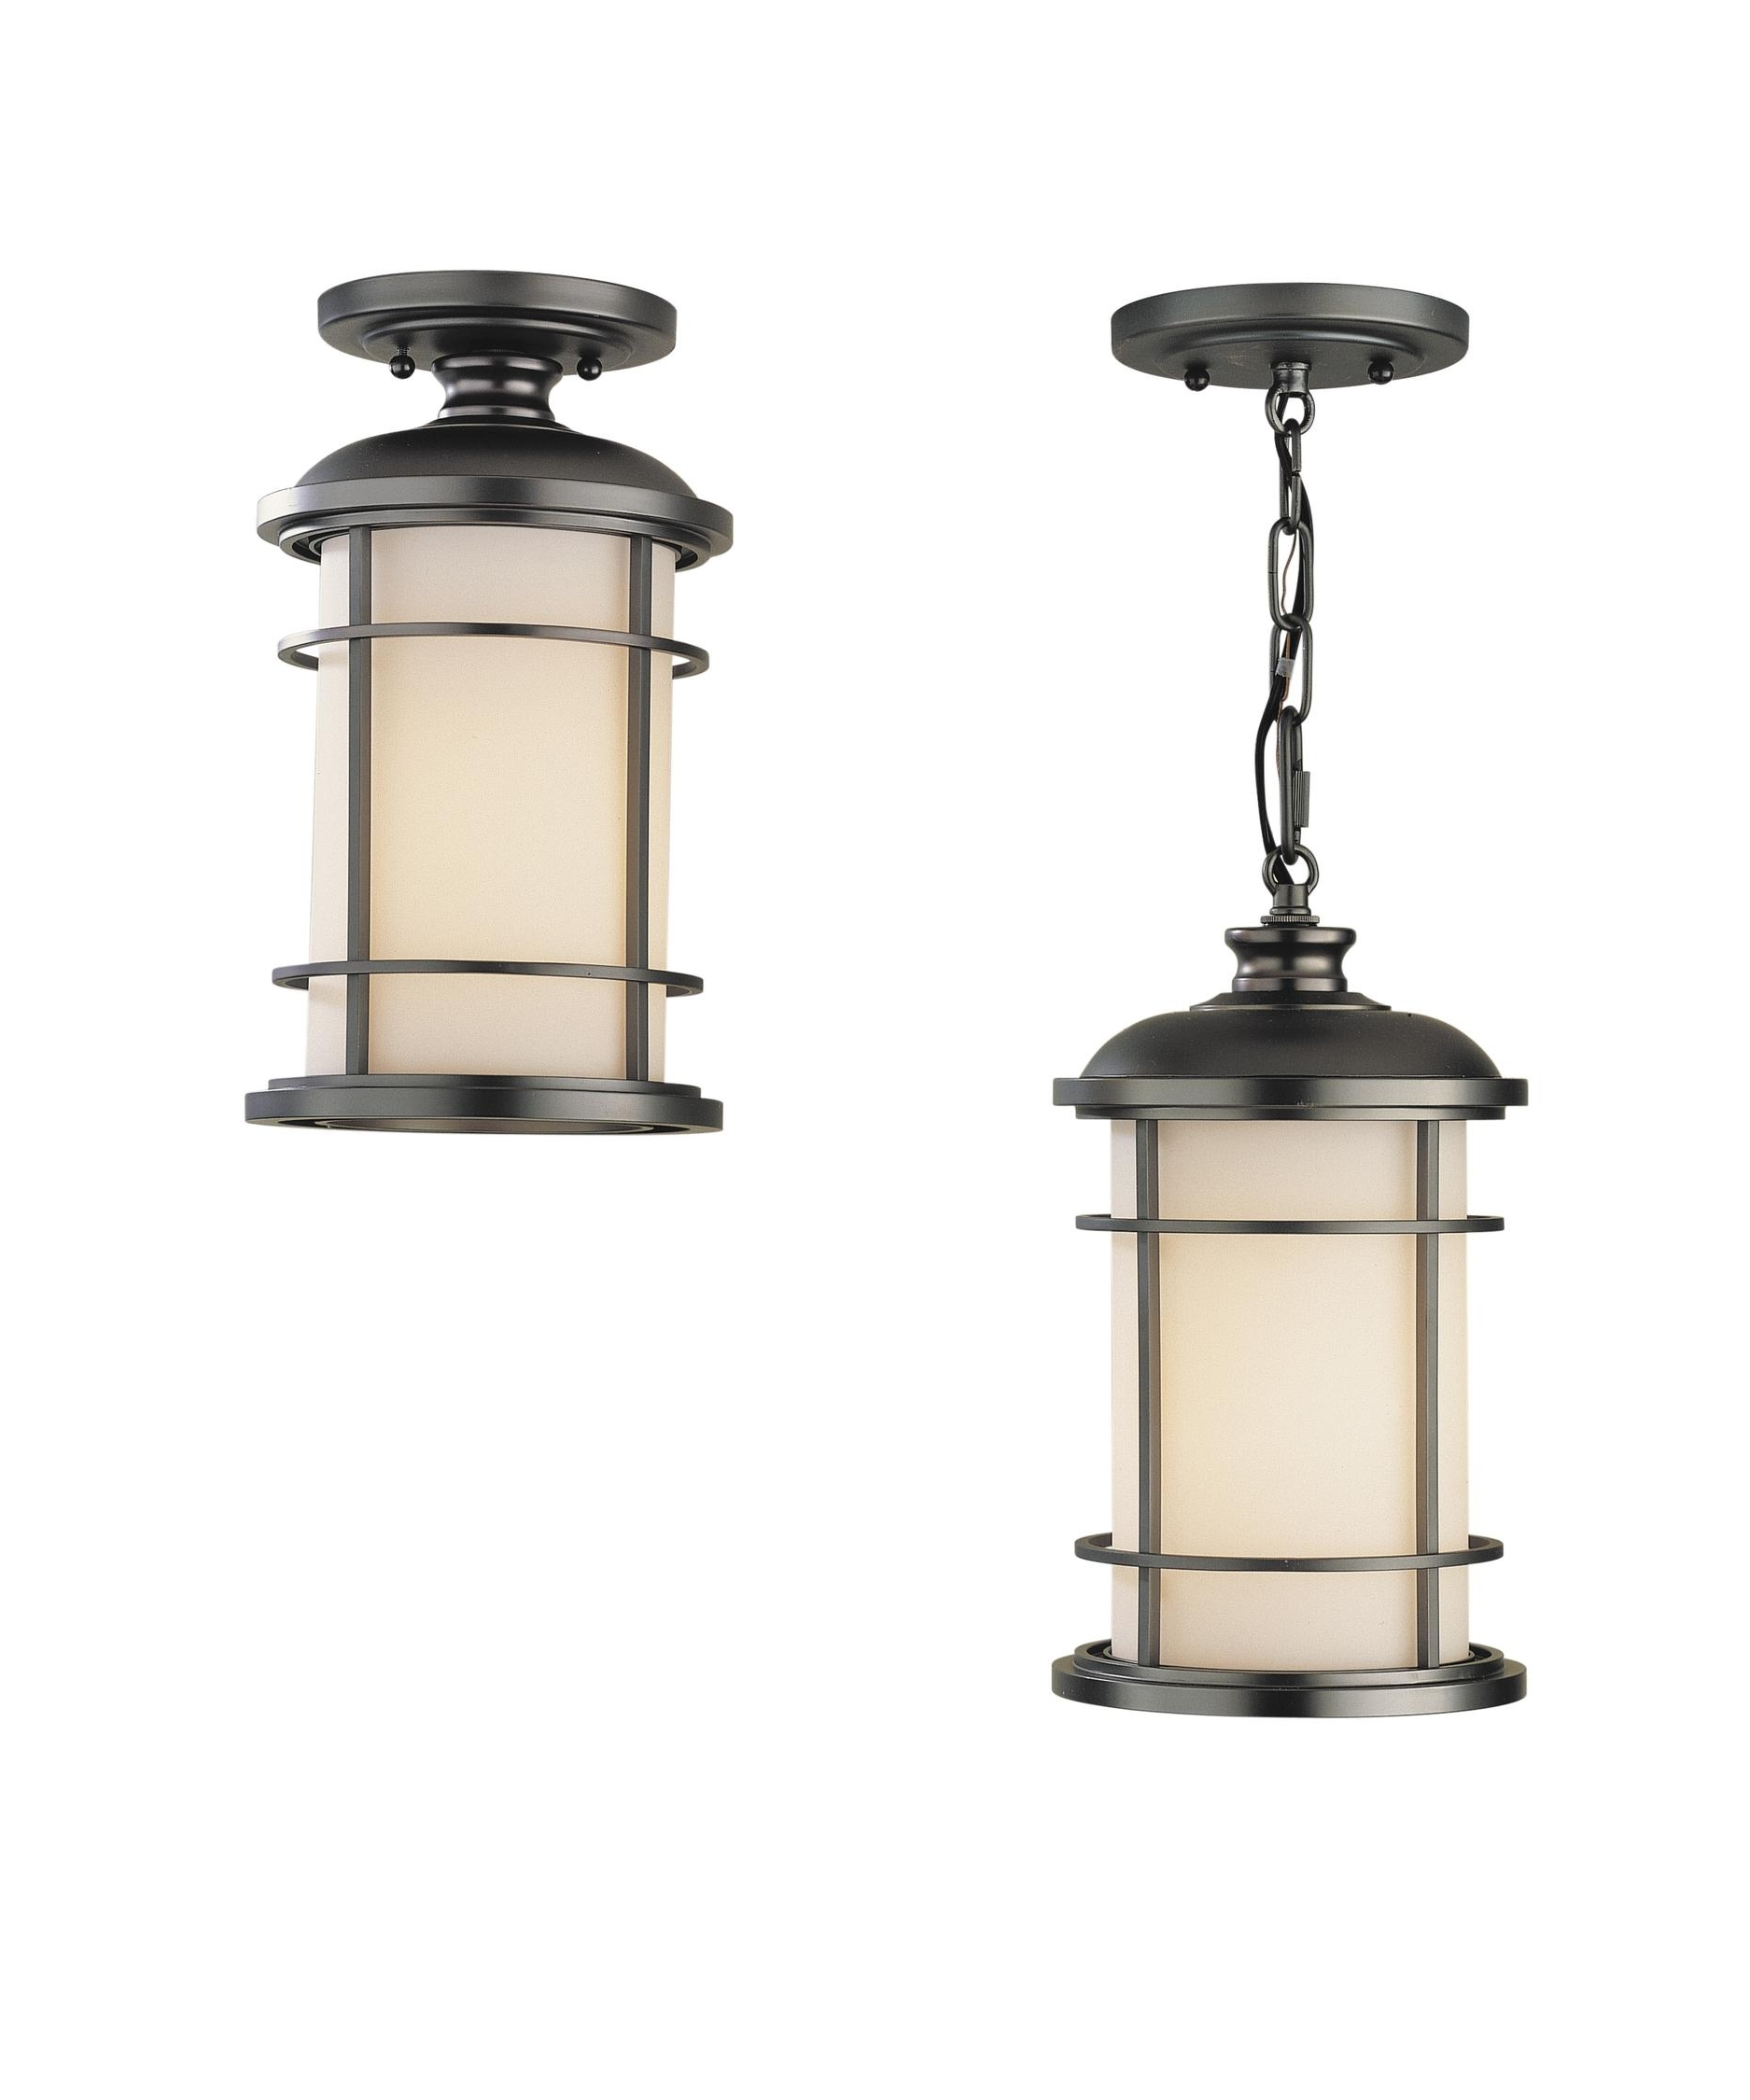 Led Outdoor Hanging Lanterns Throughout Most Popular Murray Feiss Ol2209 Lighthouse 7 Inch Wide 1 Light Outdoor Hanging (View 19 of 20)